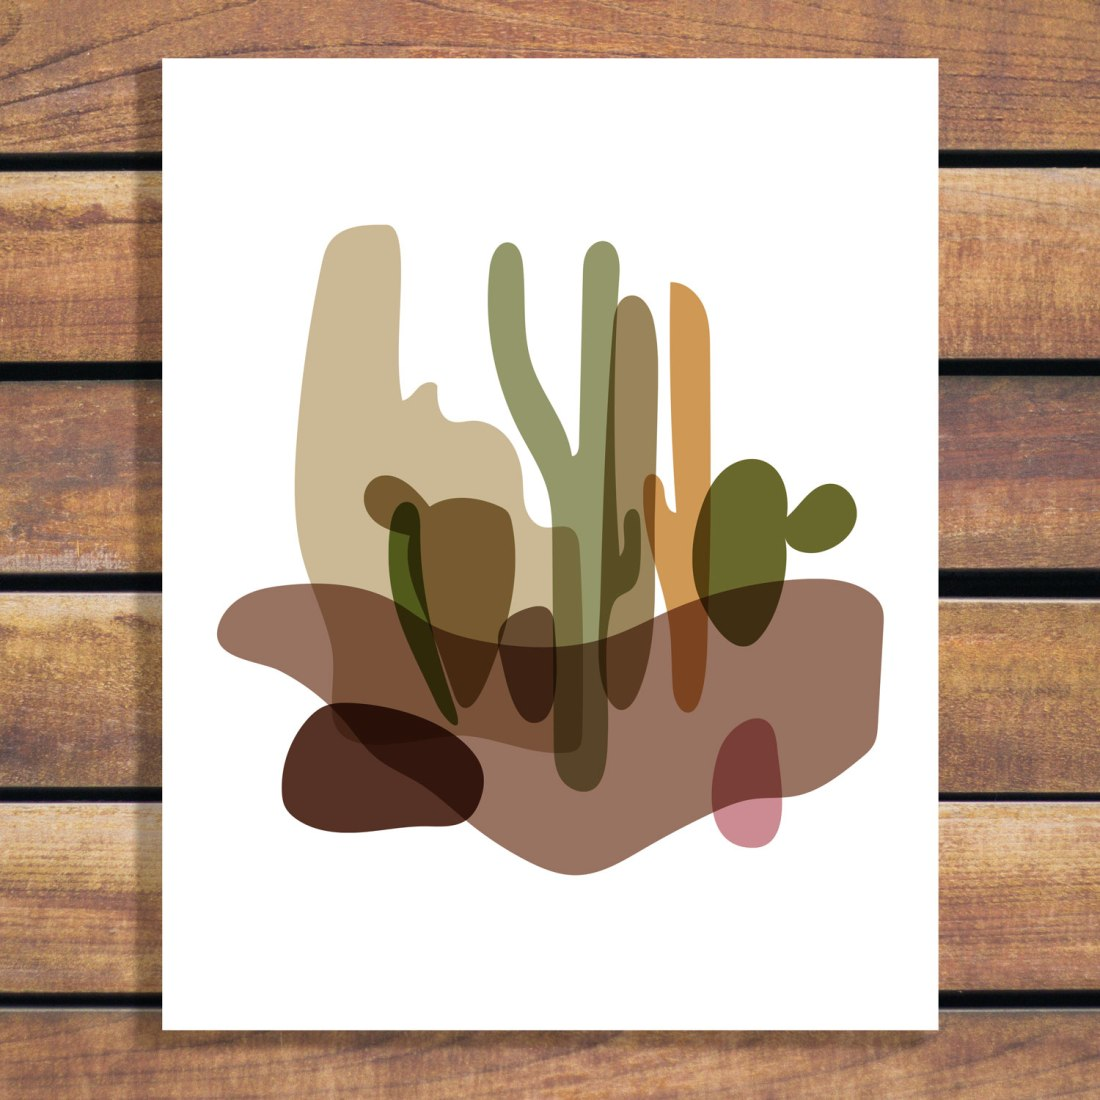 Abstract Desert landscape - Arizona Cactus Browns